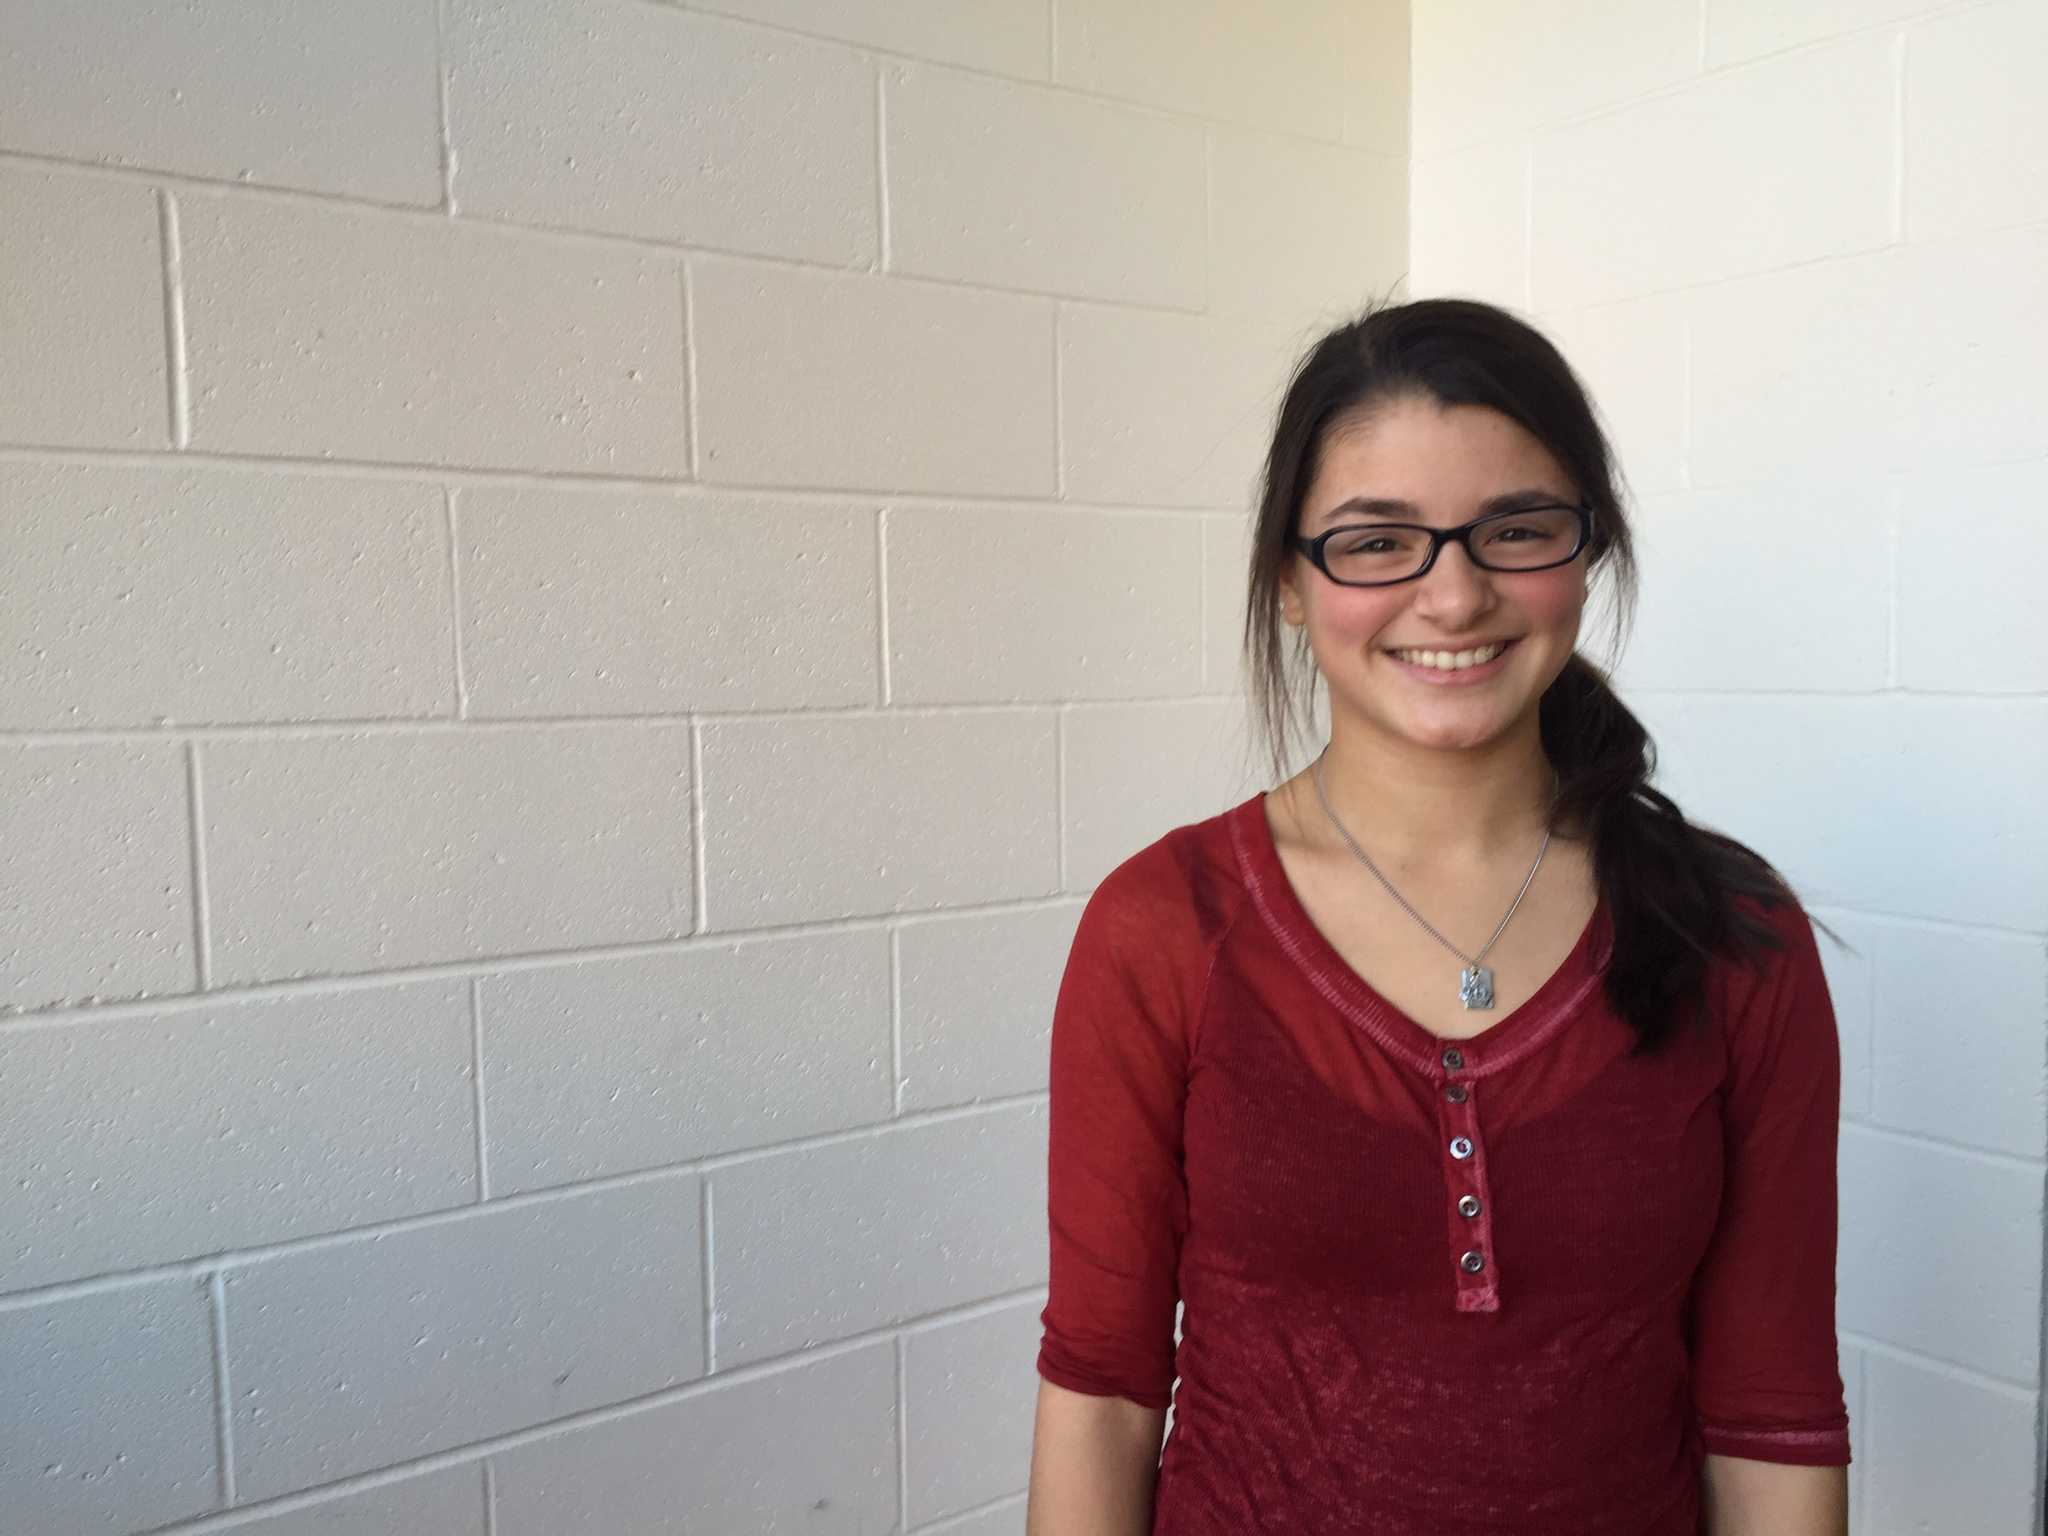 Senior Selena Safiol will graduate early in order to commence her mission trip.